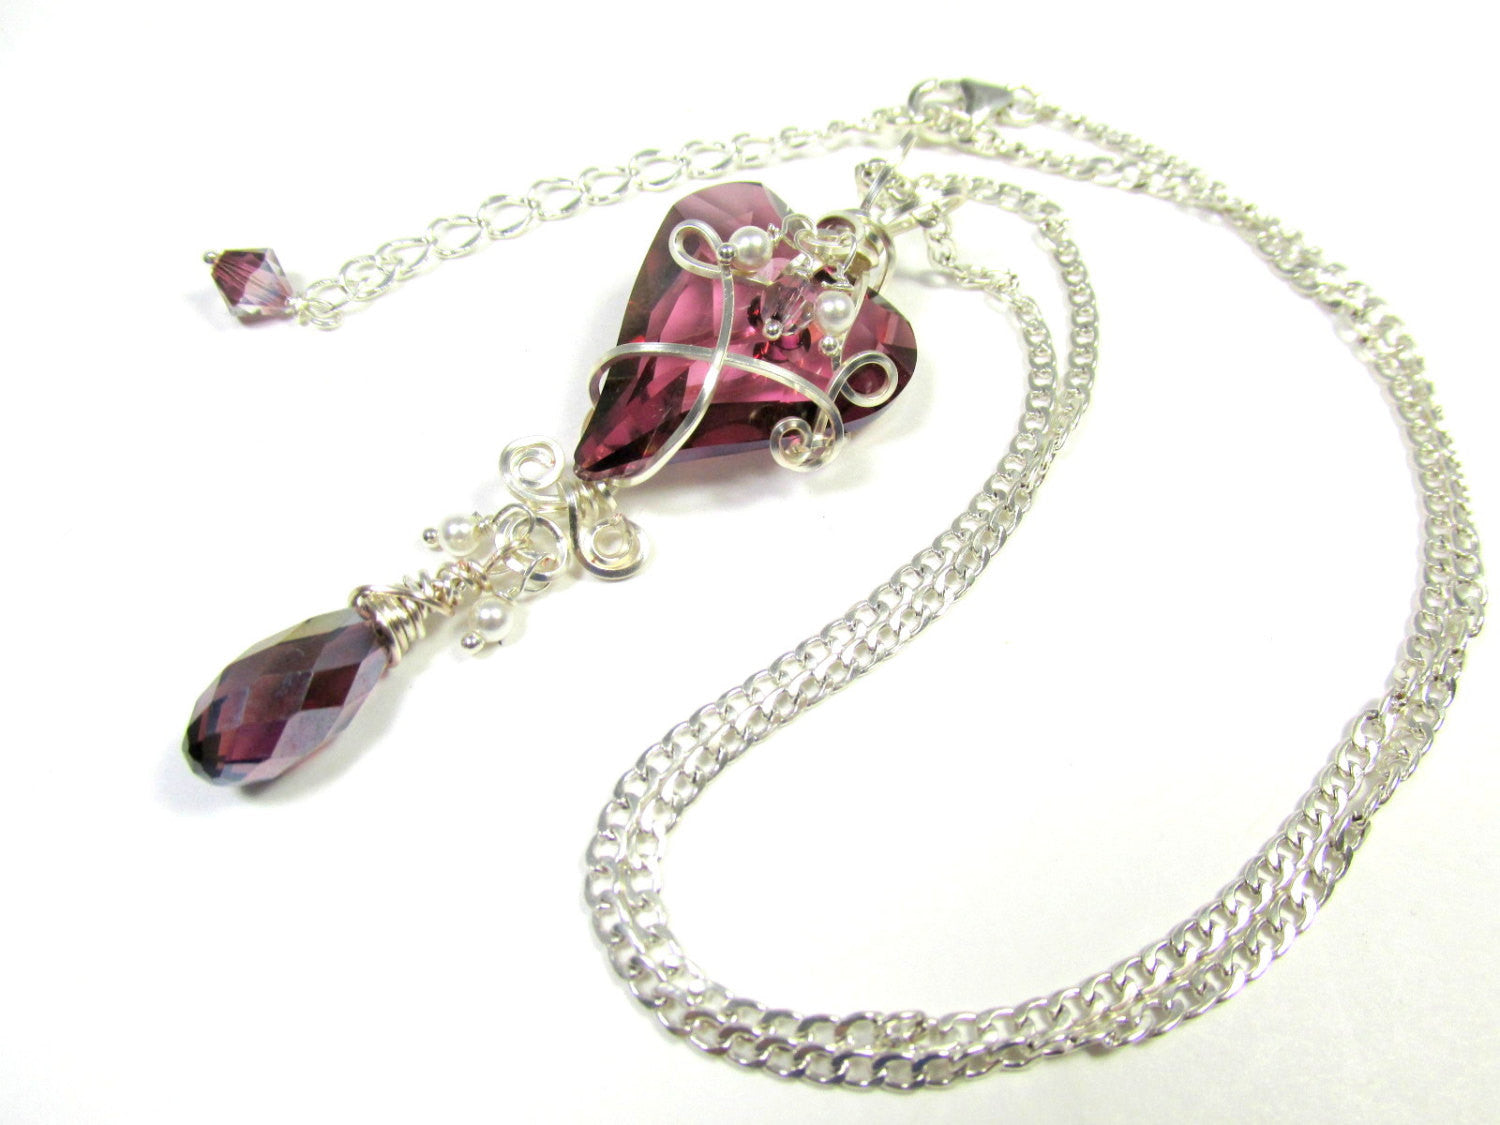 Swarovski Plum Purple Lilac Shadow Wire Wrapped Wild Heart Necklace and Earring Set in Sterling Silver - Odyssey Creations